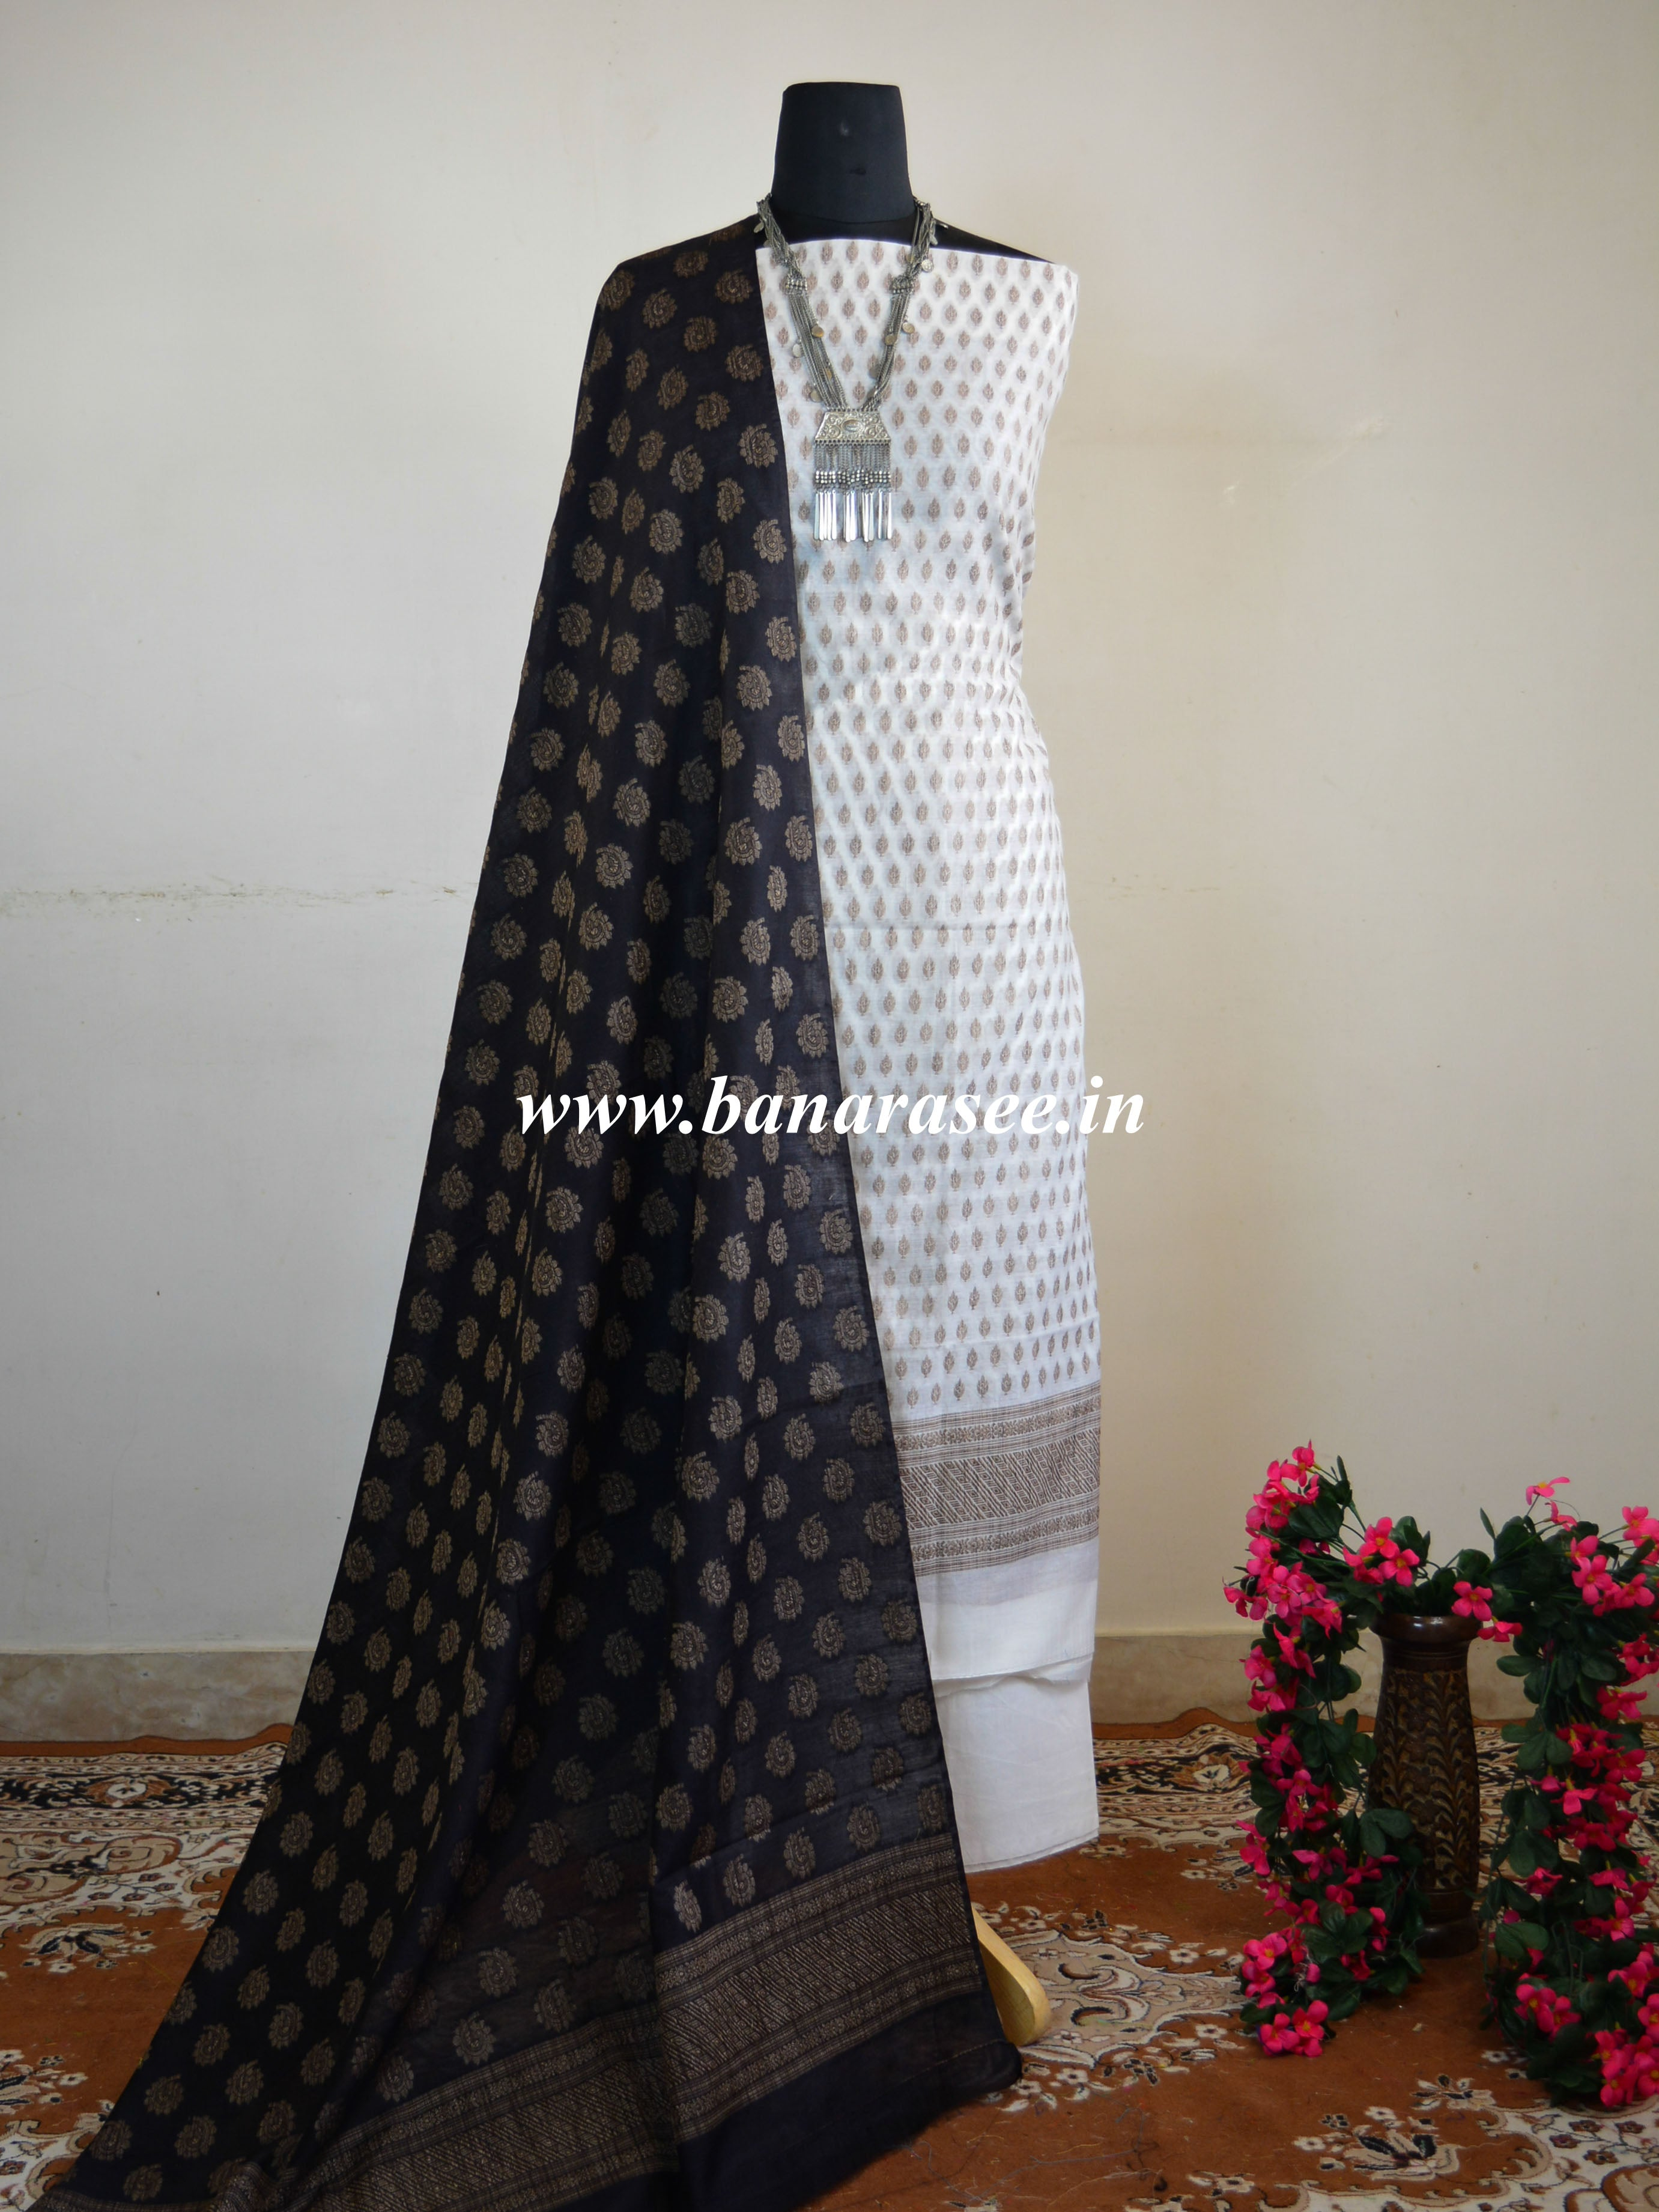 Banarasee Salwar Kameez Soft Cotton Resham Buti Fabric With Black Dupatta-White